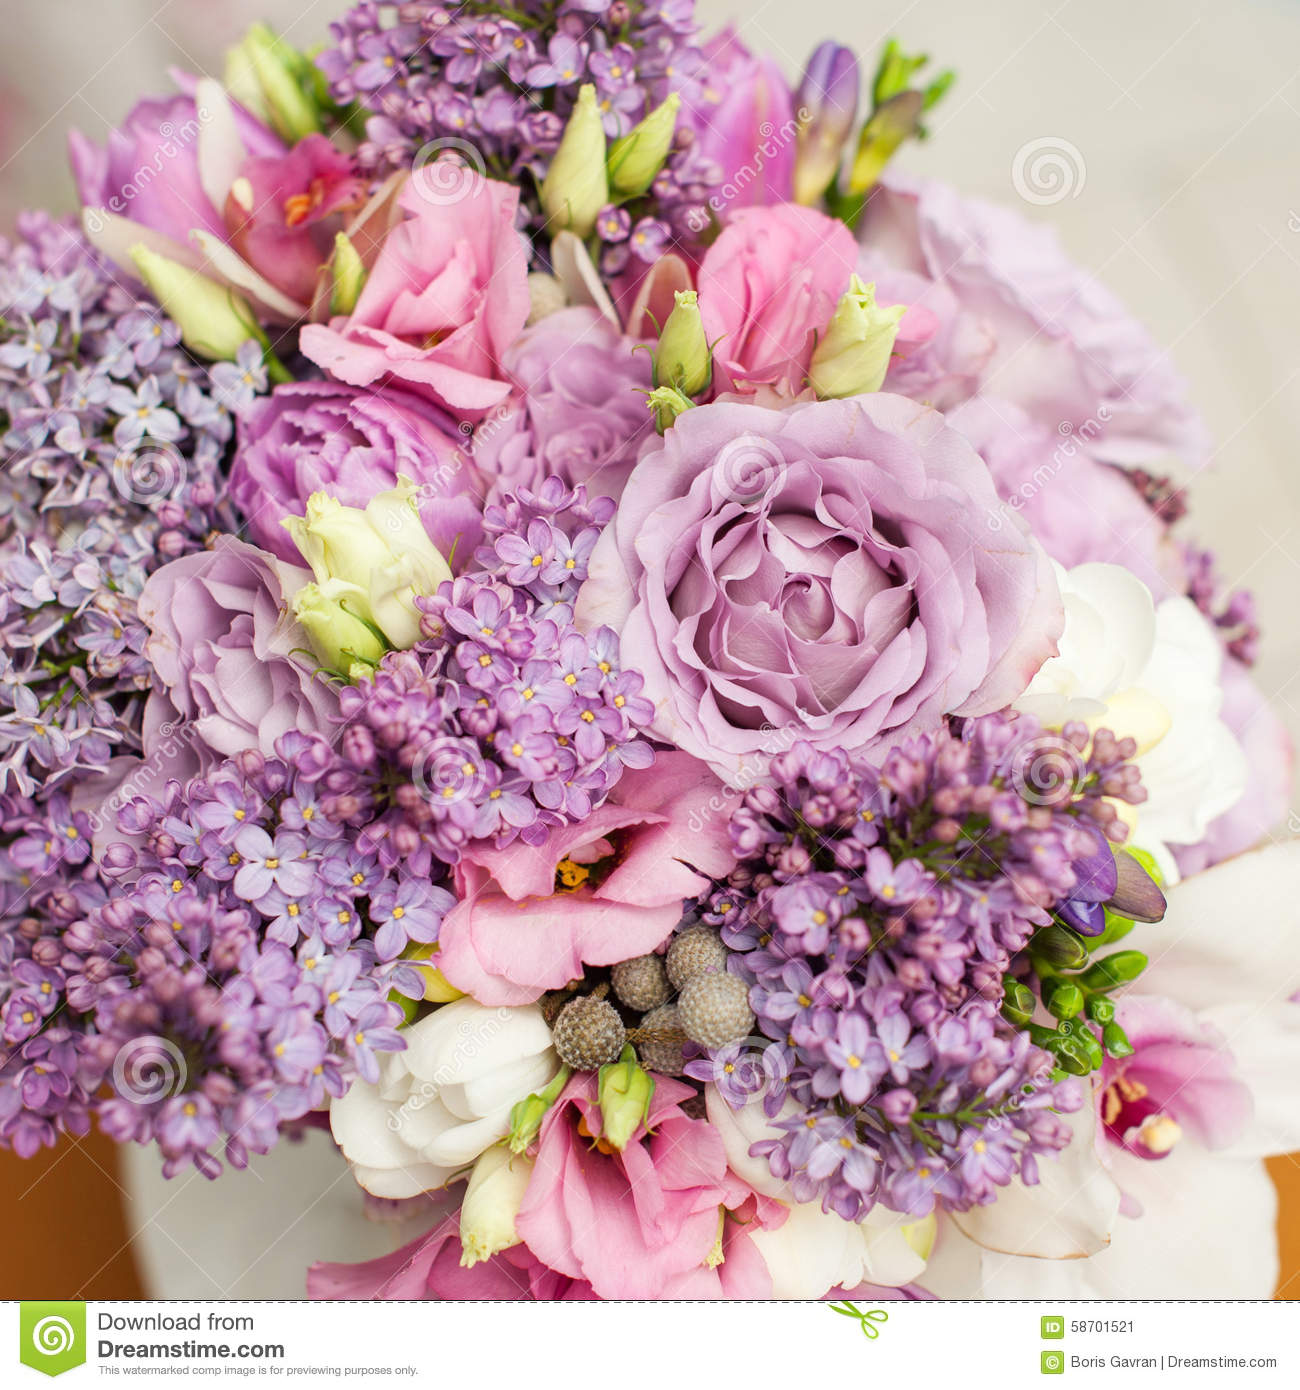 Flower Arrangement With Lilac And Eustoma Flowers Stock Image ...